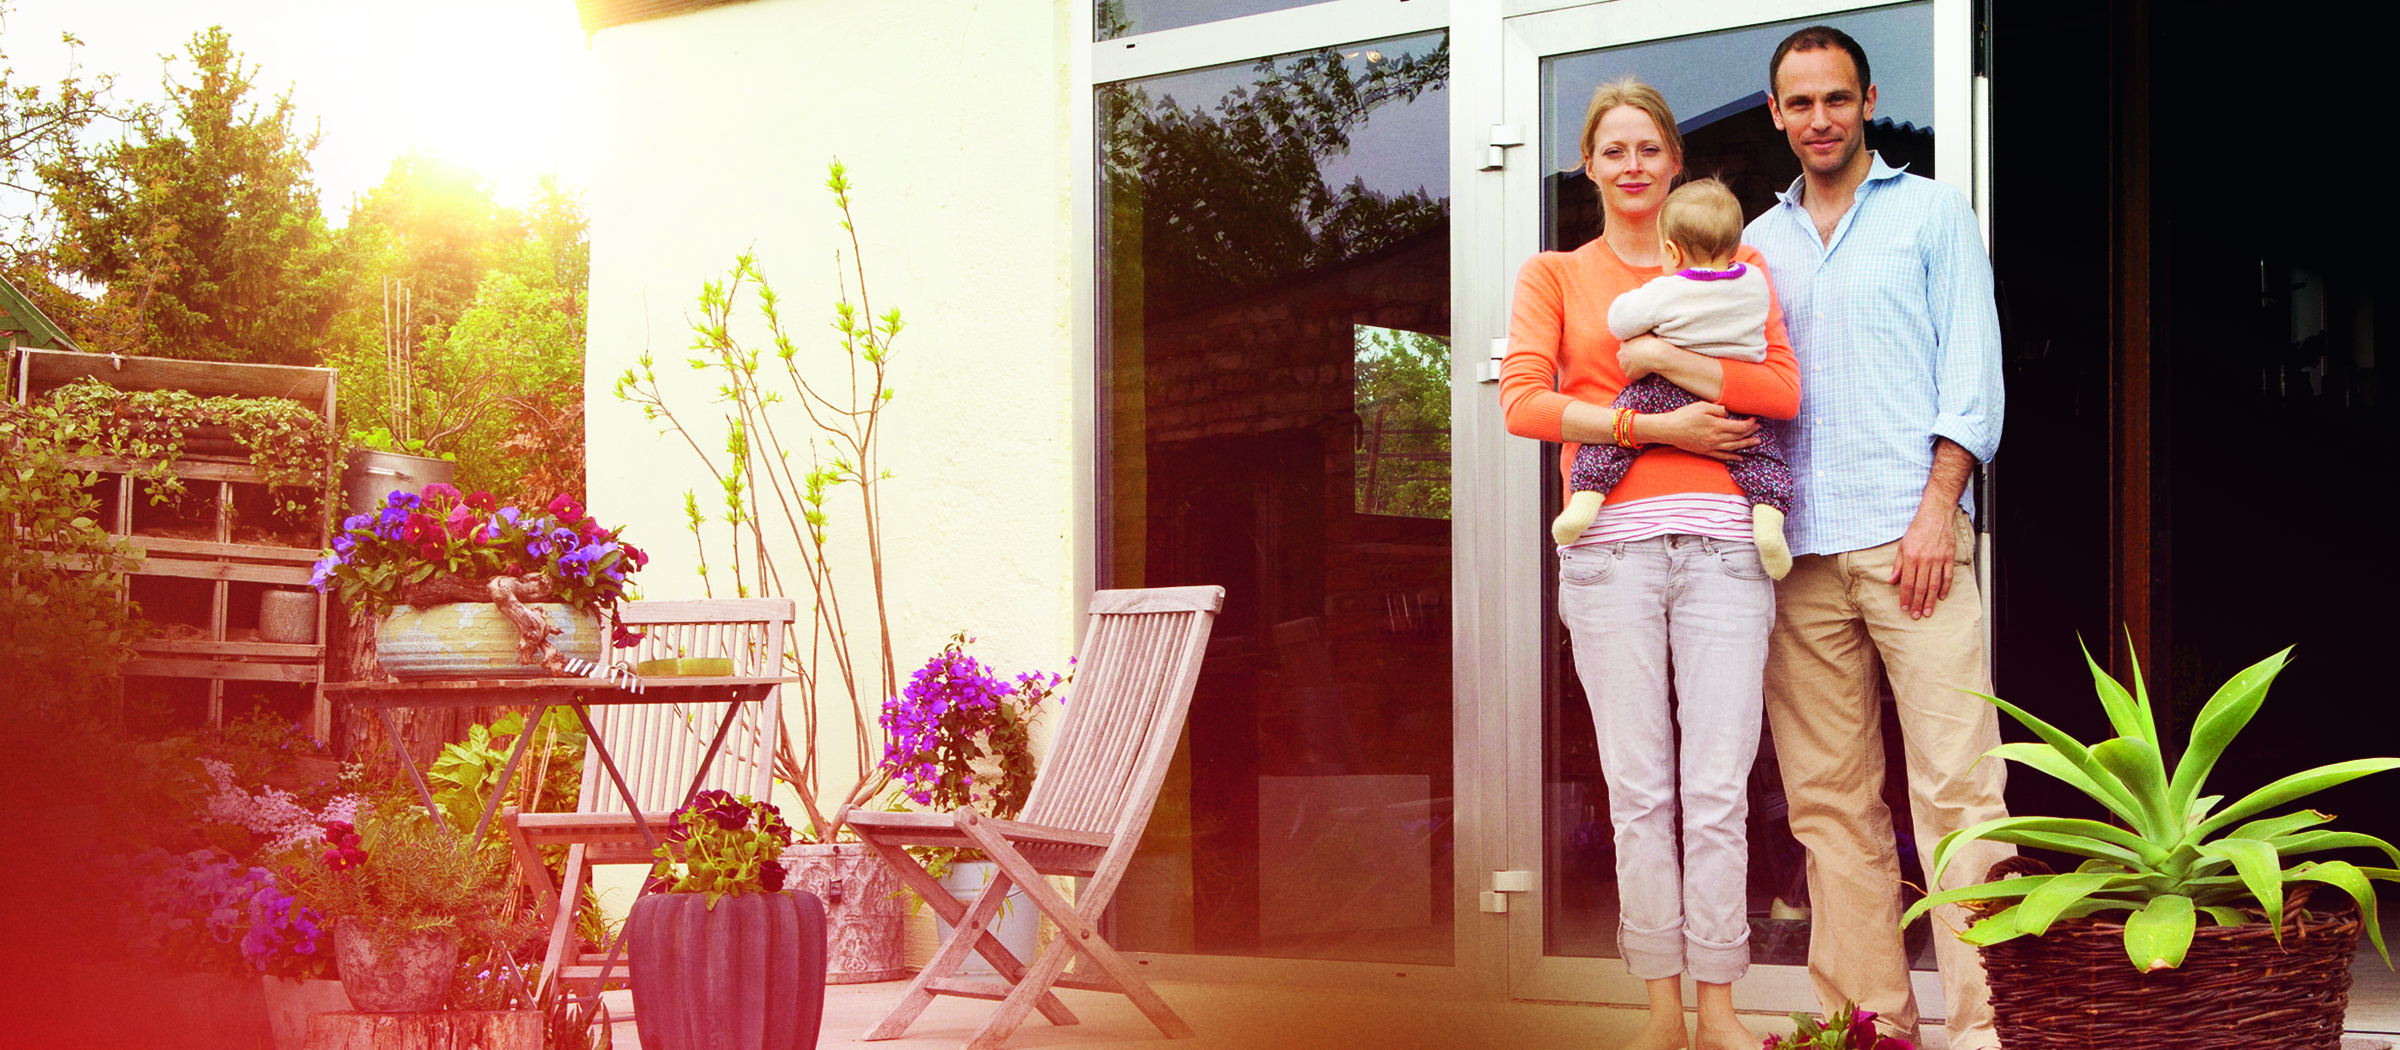 A man and a woman holding a baby standing on the patio in front of their house